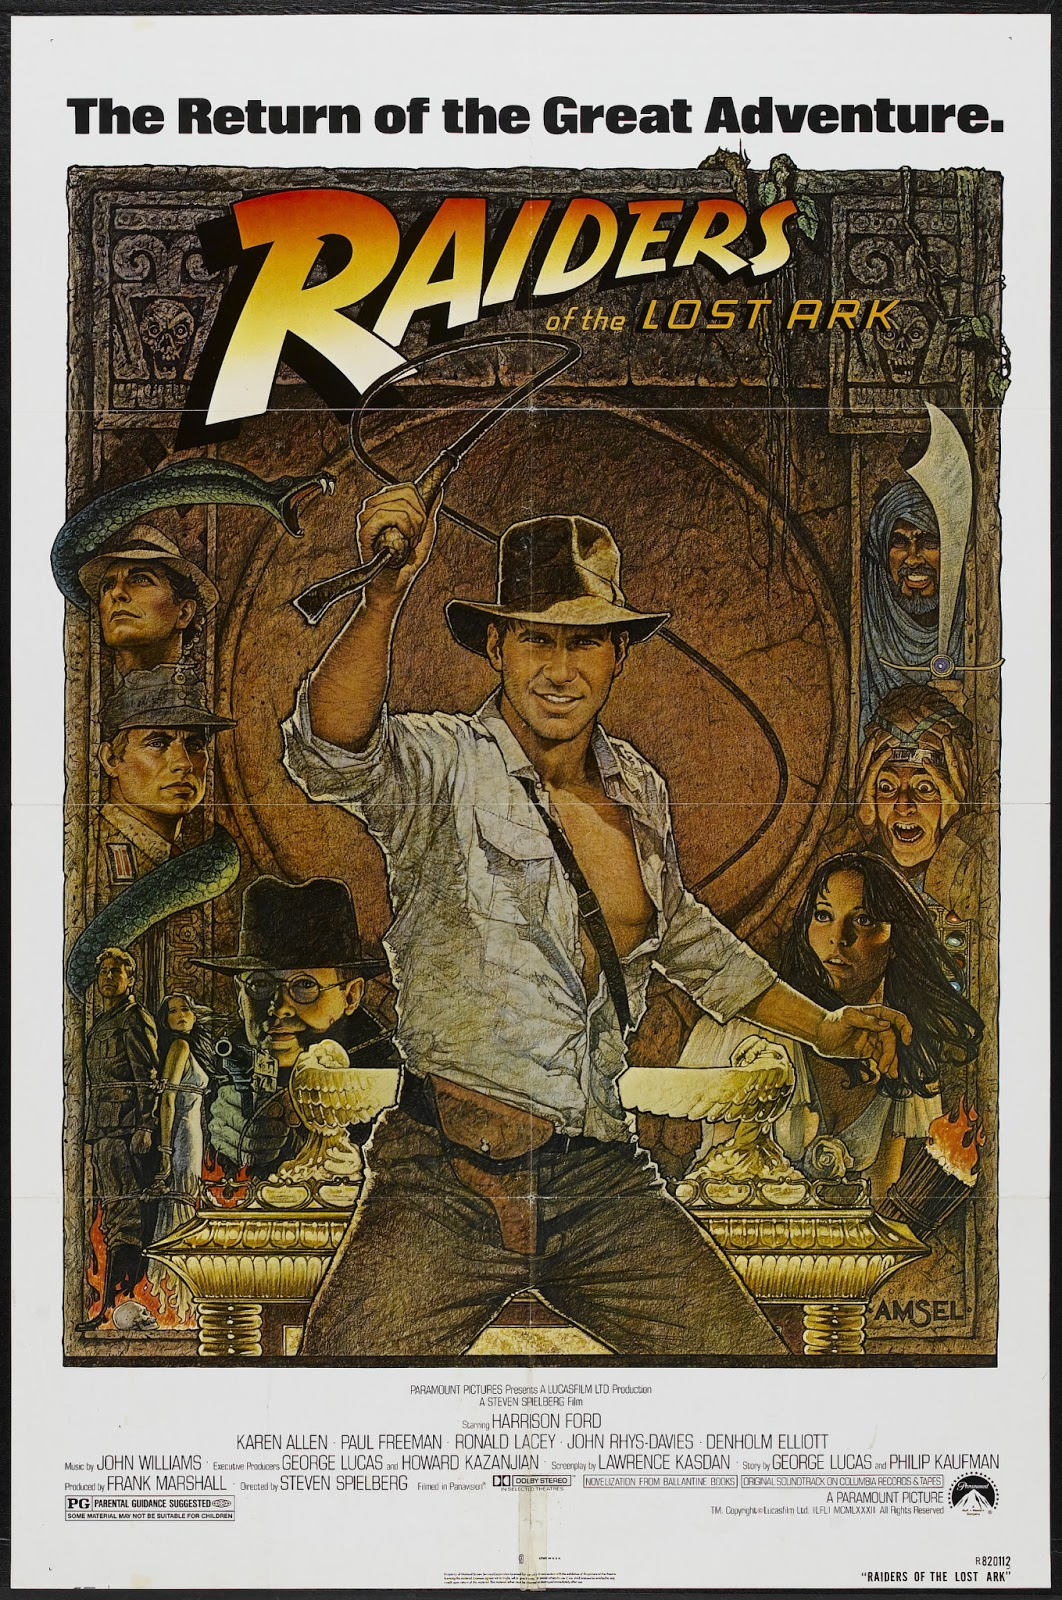 Happyotter: RAIDERS OF THE LOST ARK (1981)